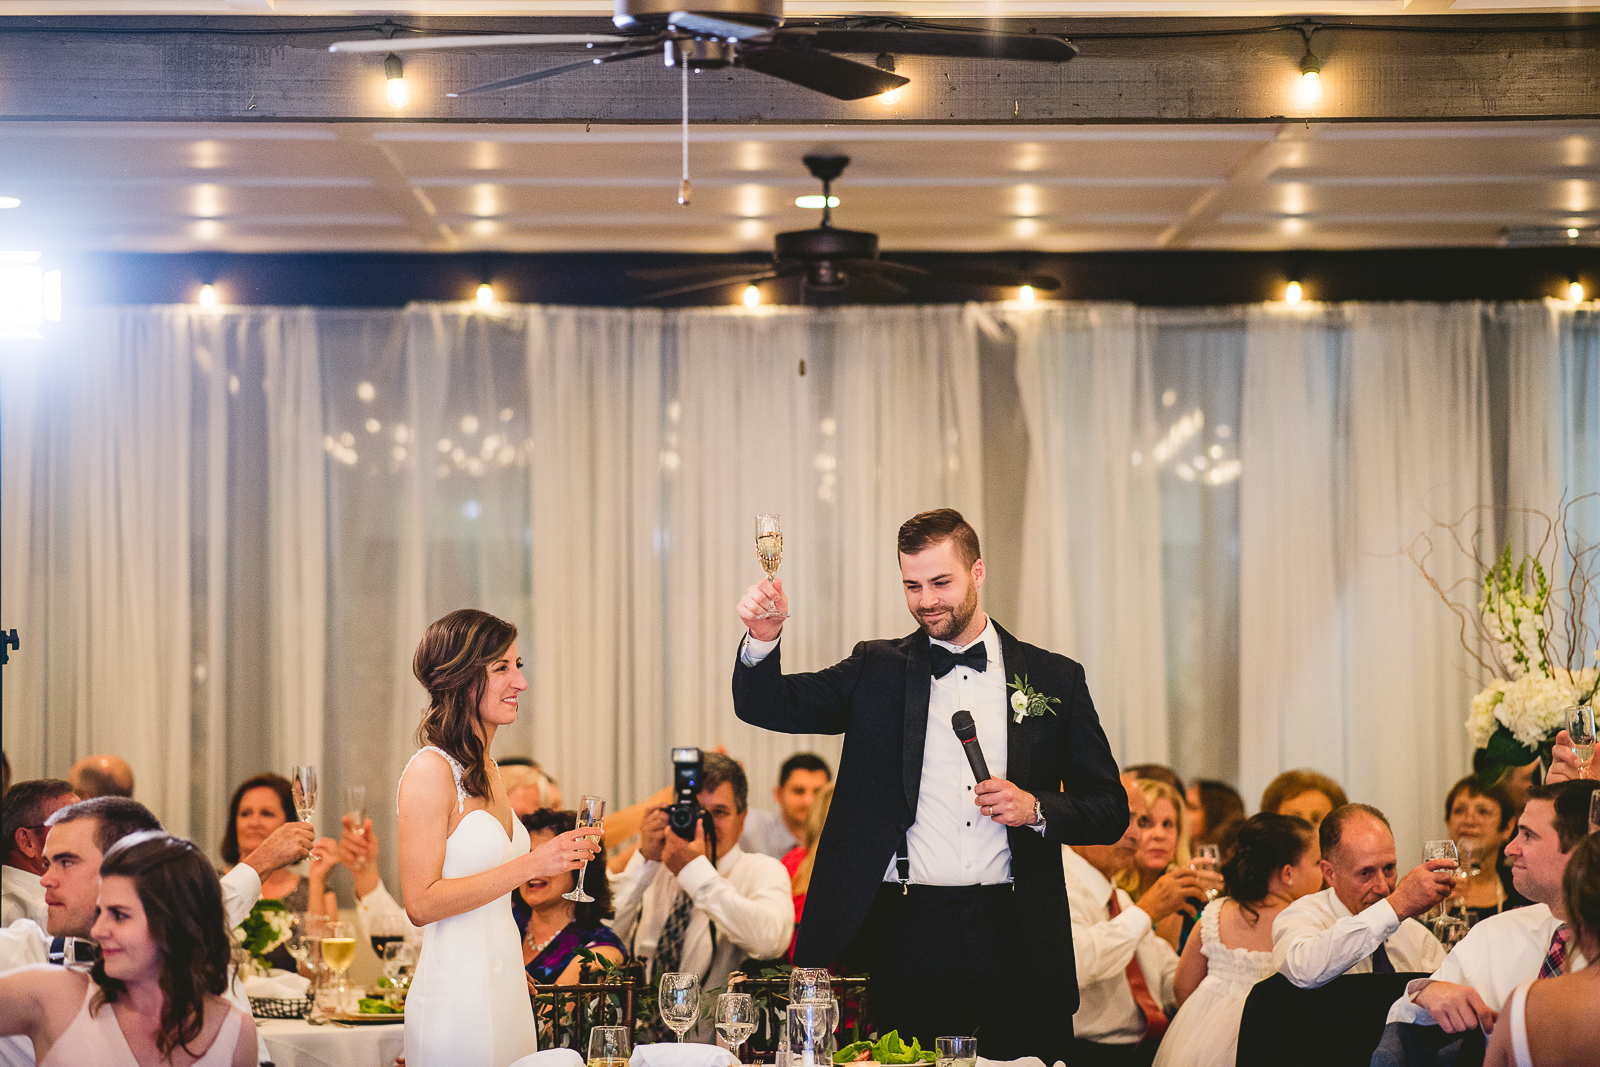 56 club of hillbrook groom toast - Club of Hillbrook Wedding // Jenna + Ben